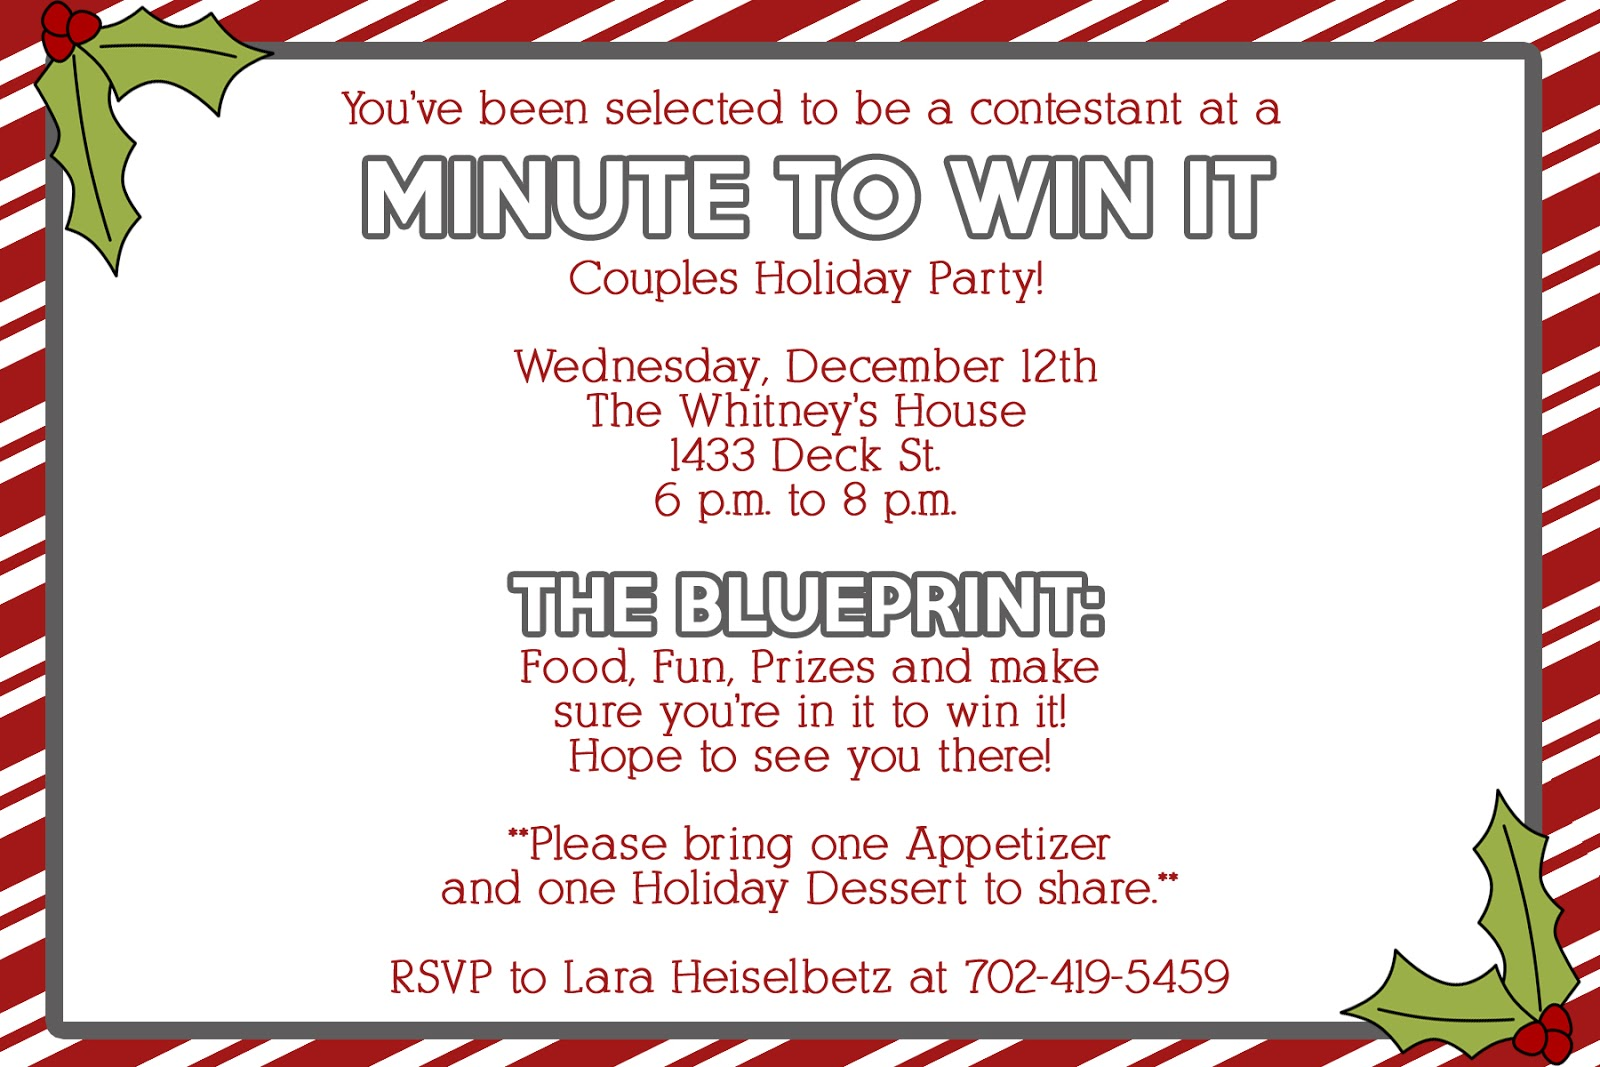 how to make minute to win it invitations